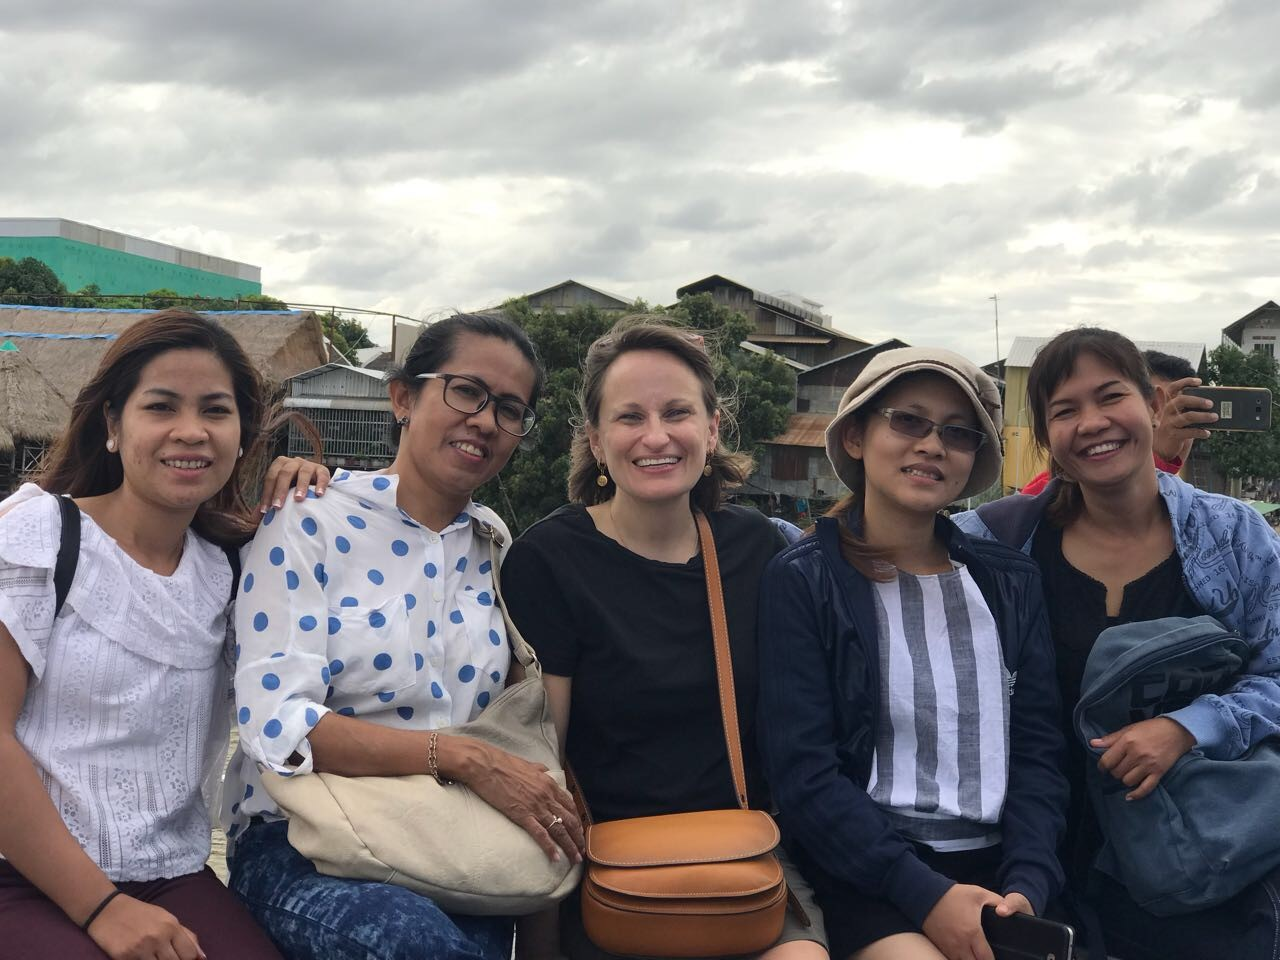 Thais with some of our wonderful work colleagues at the IJM retreat, on a tour of Silk Island.